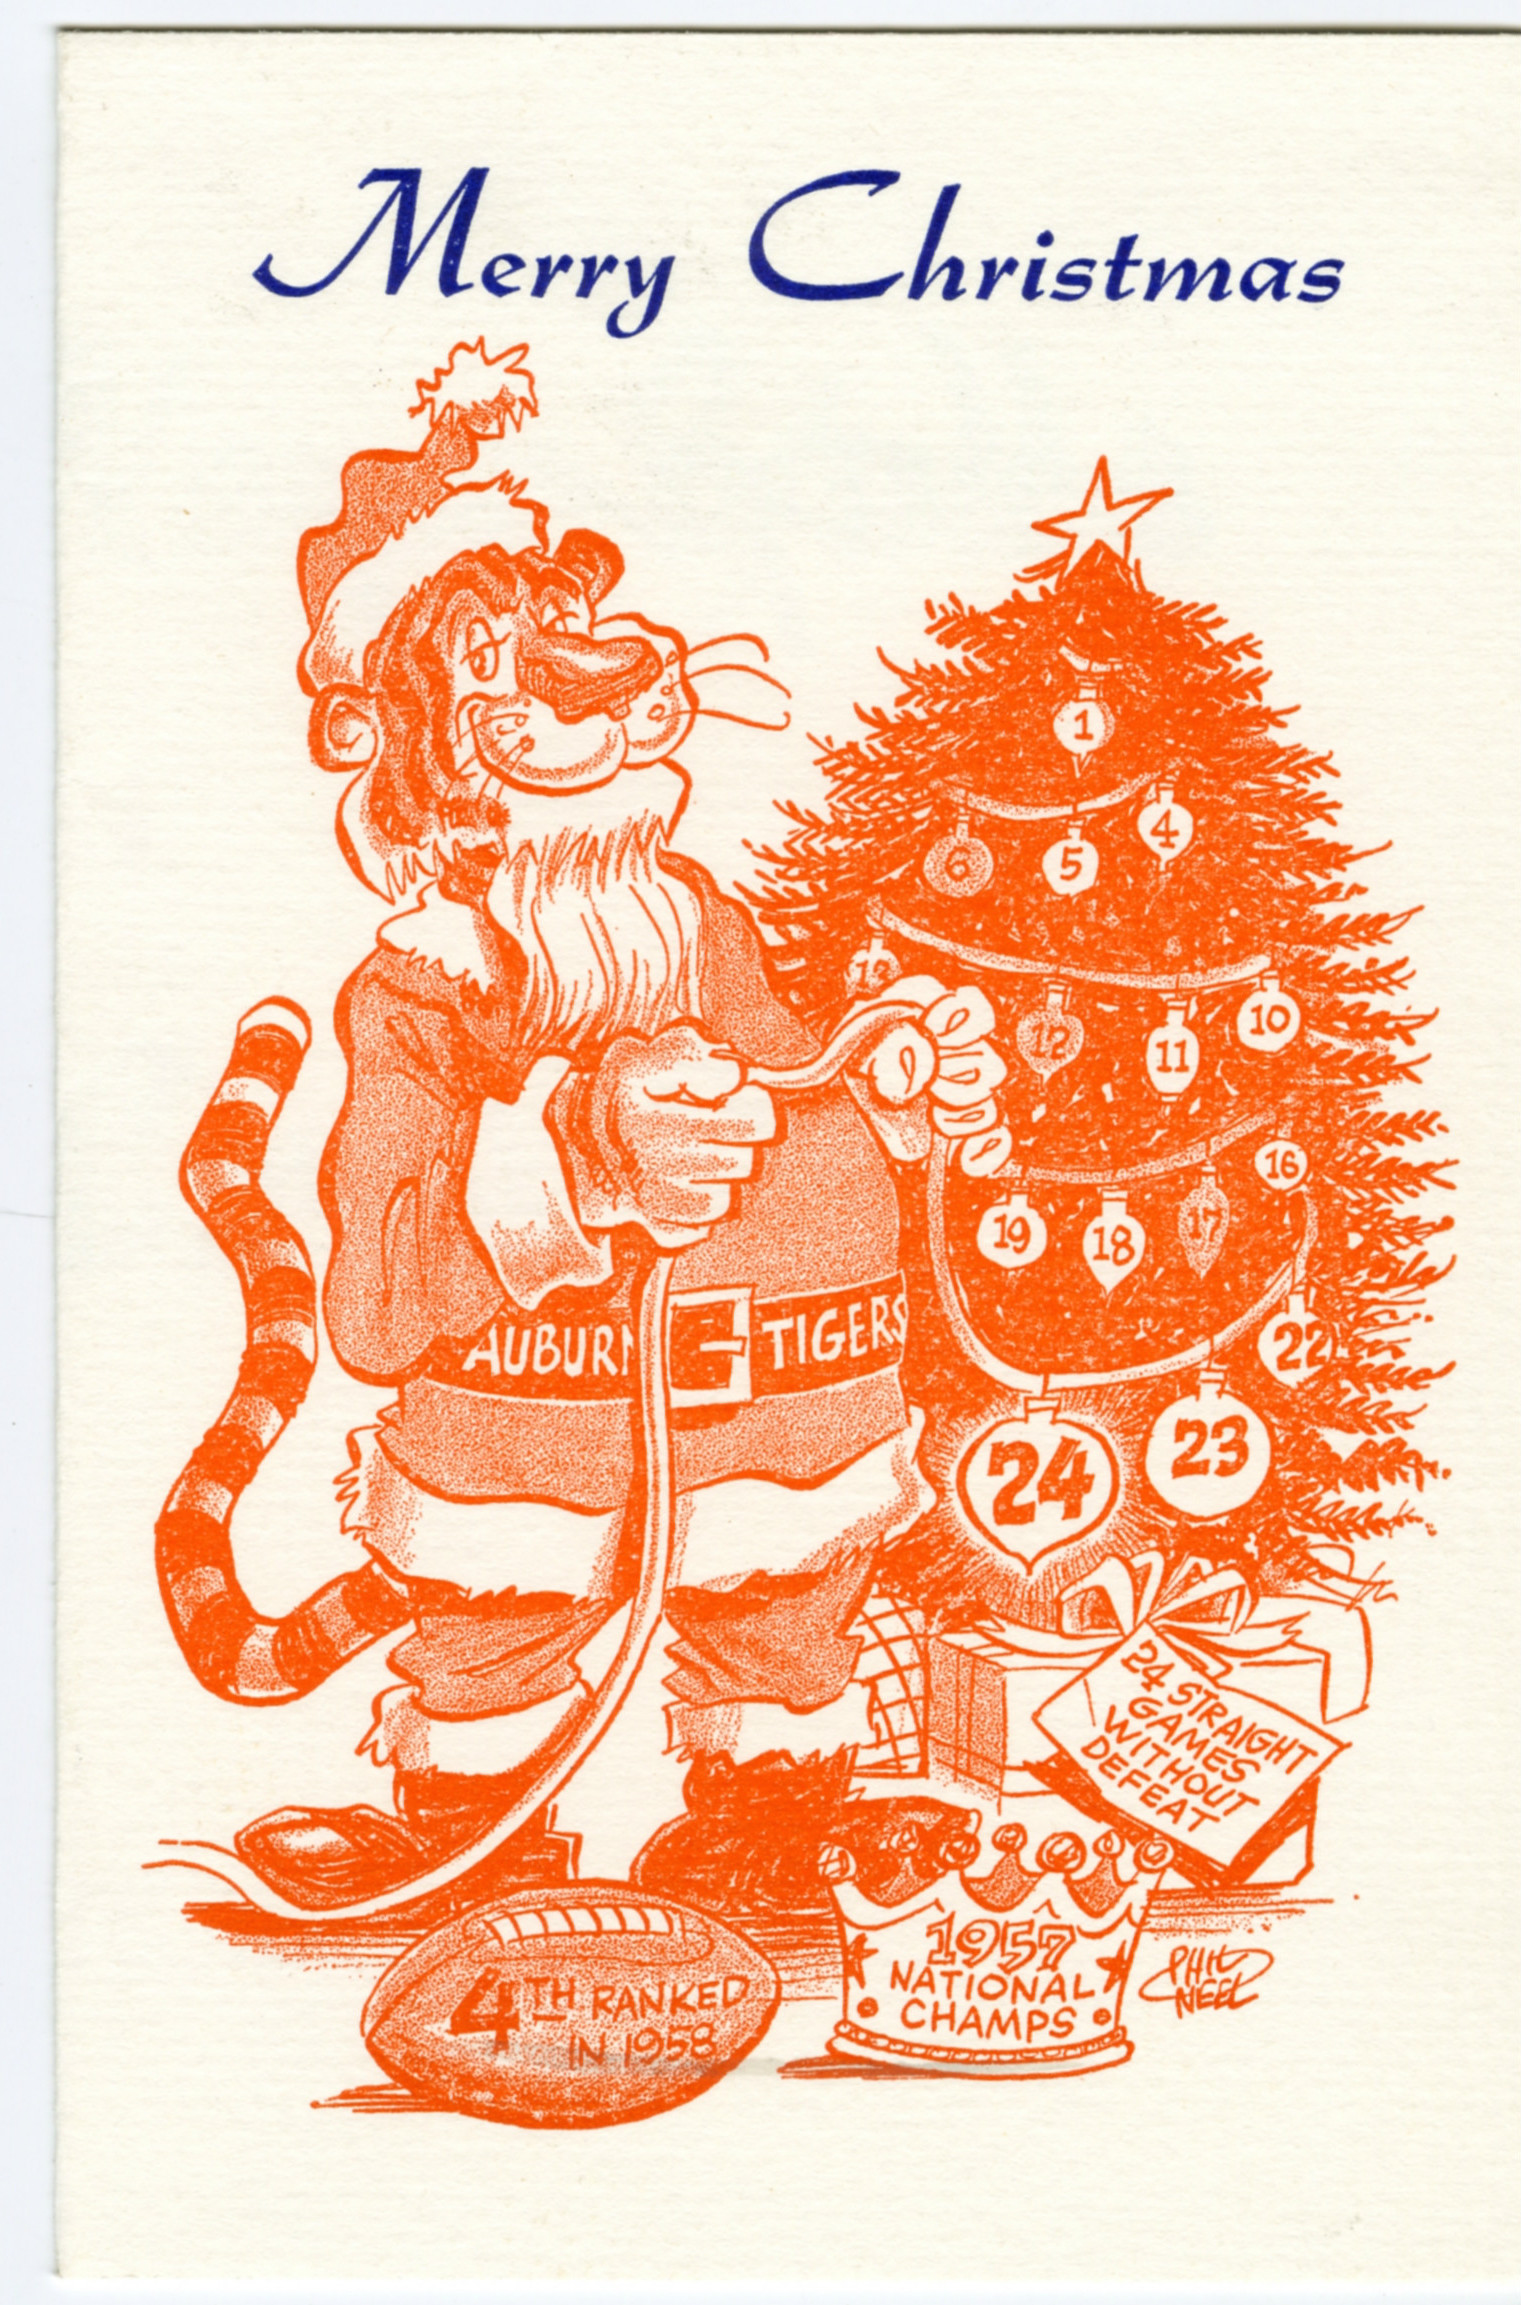 mery-christmas-1958-phil-neel-aubie-card